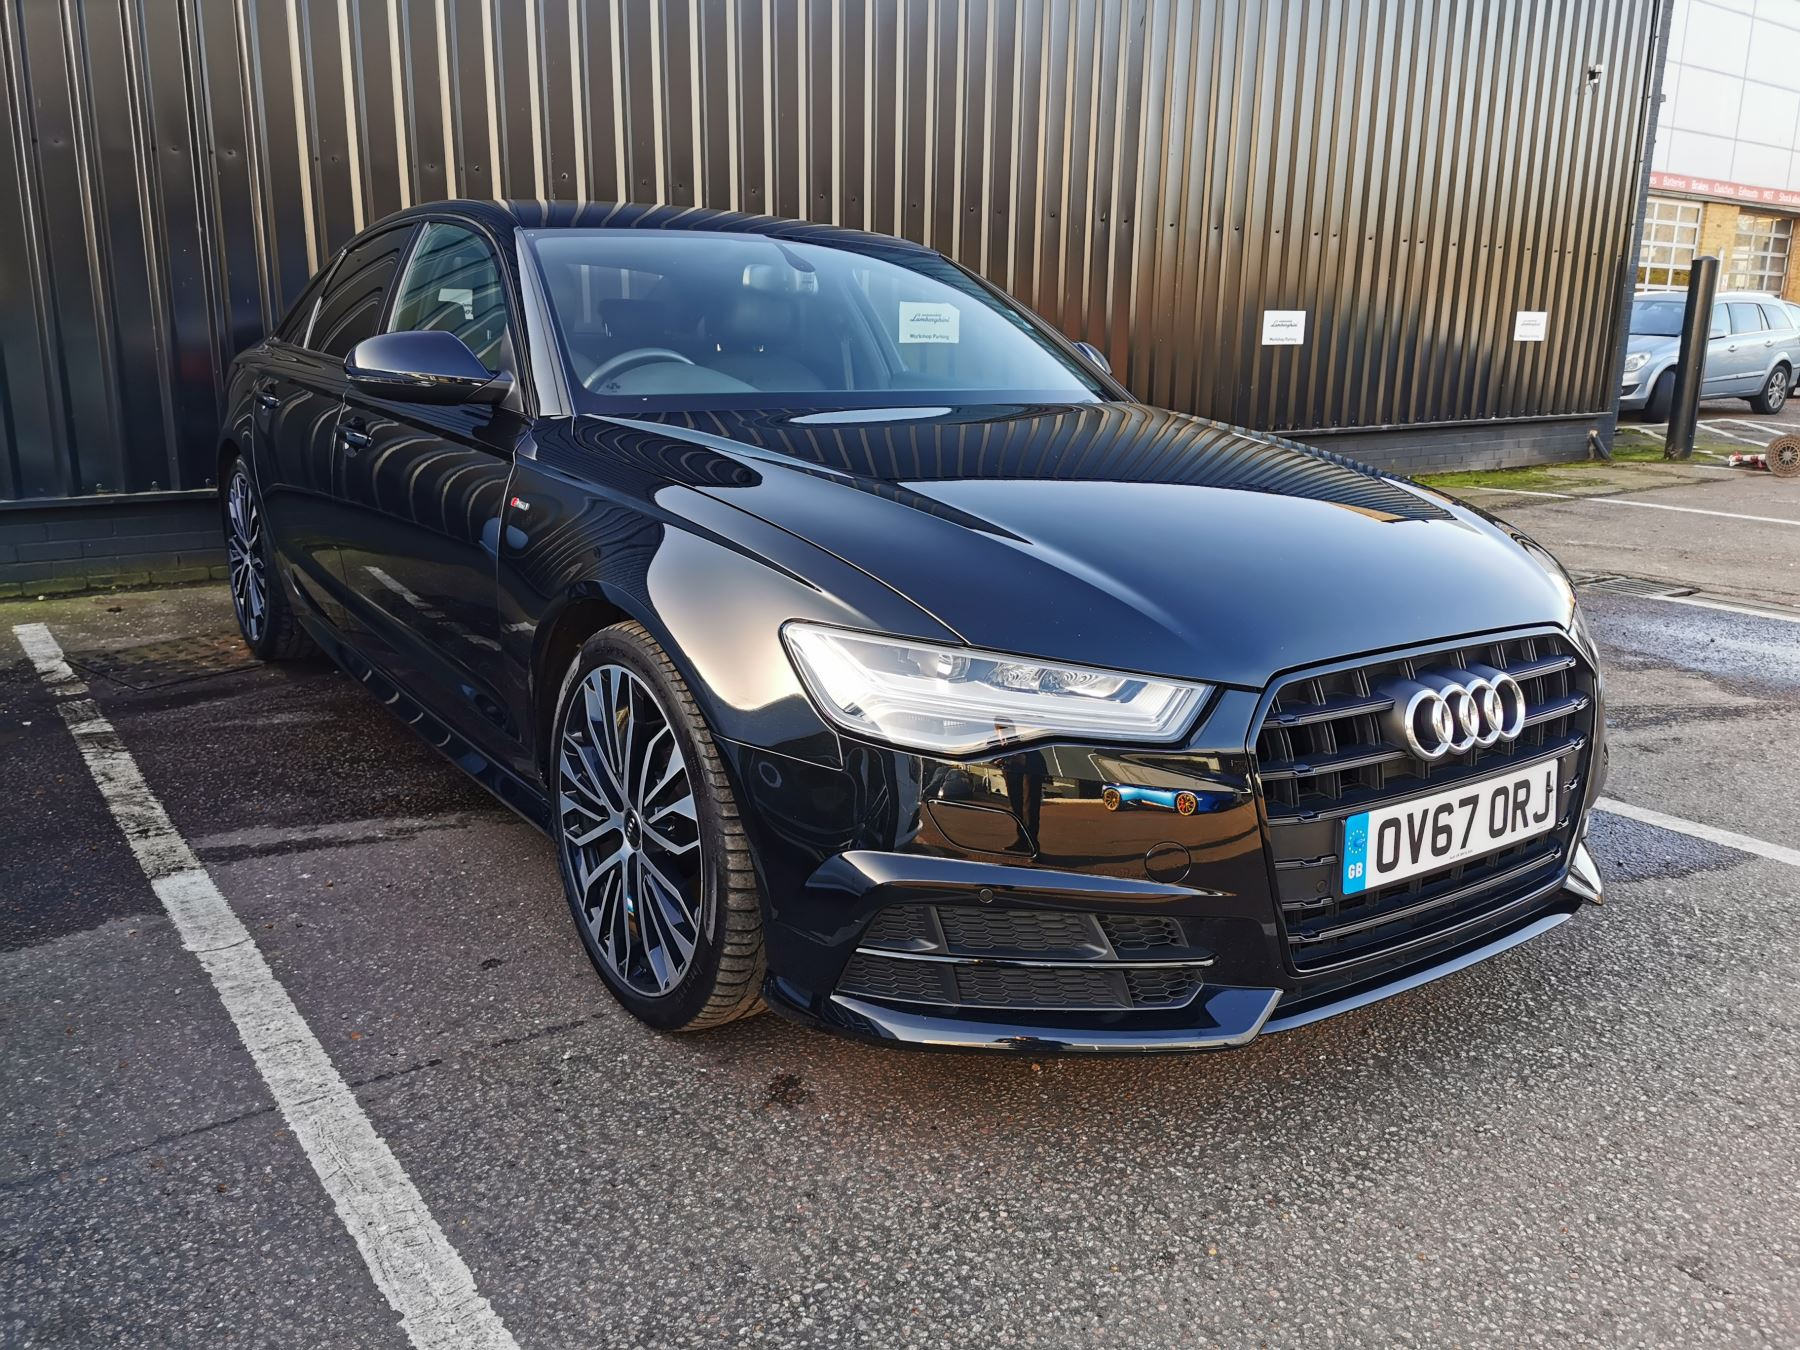 Audi A6 2.0 TDI Ultra Black Edition S Tronic Diesel Automatic 4 door Saloon (2017)